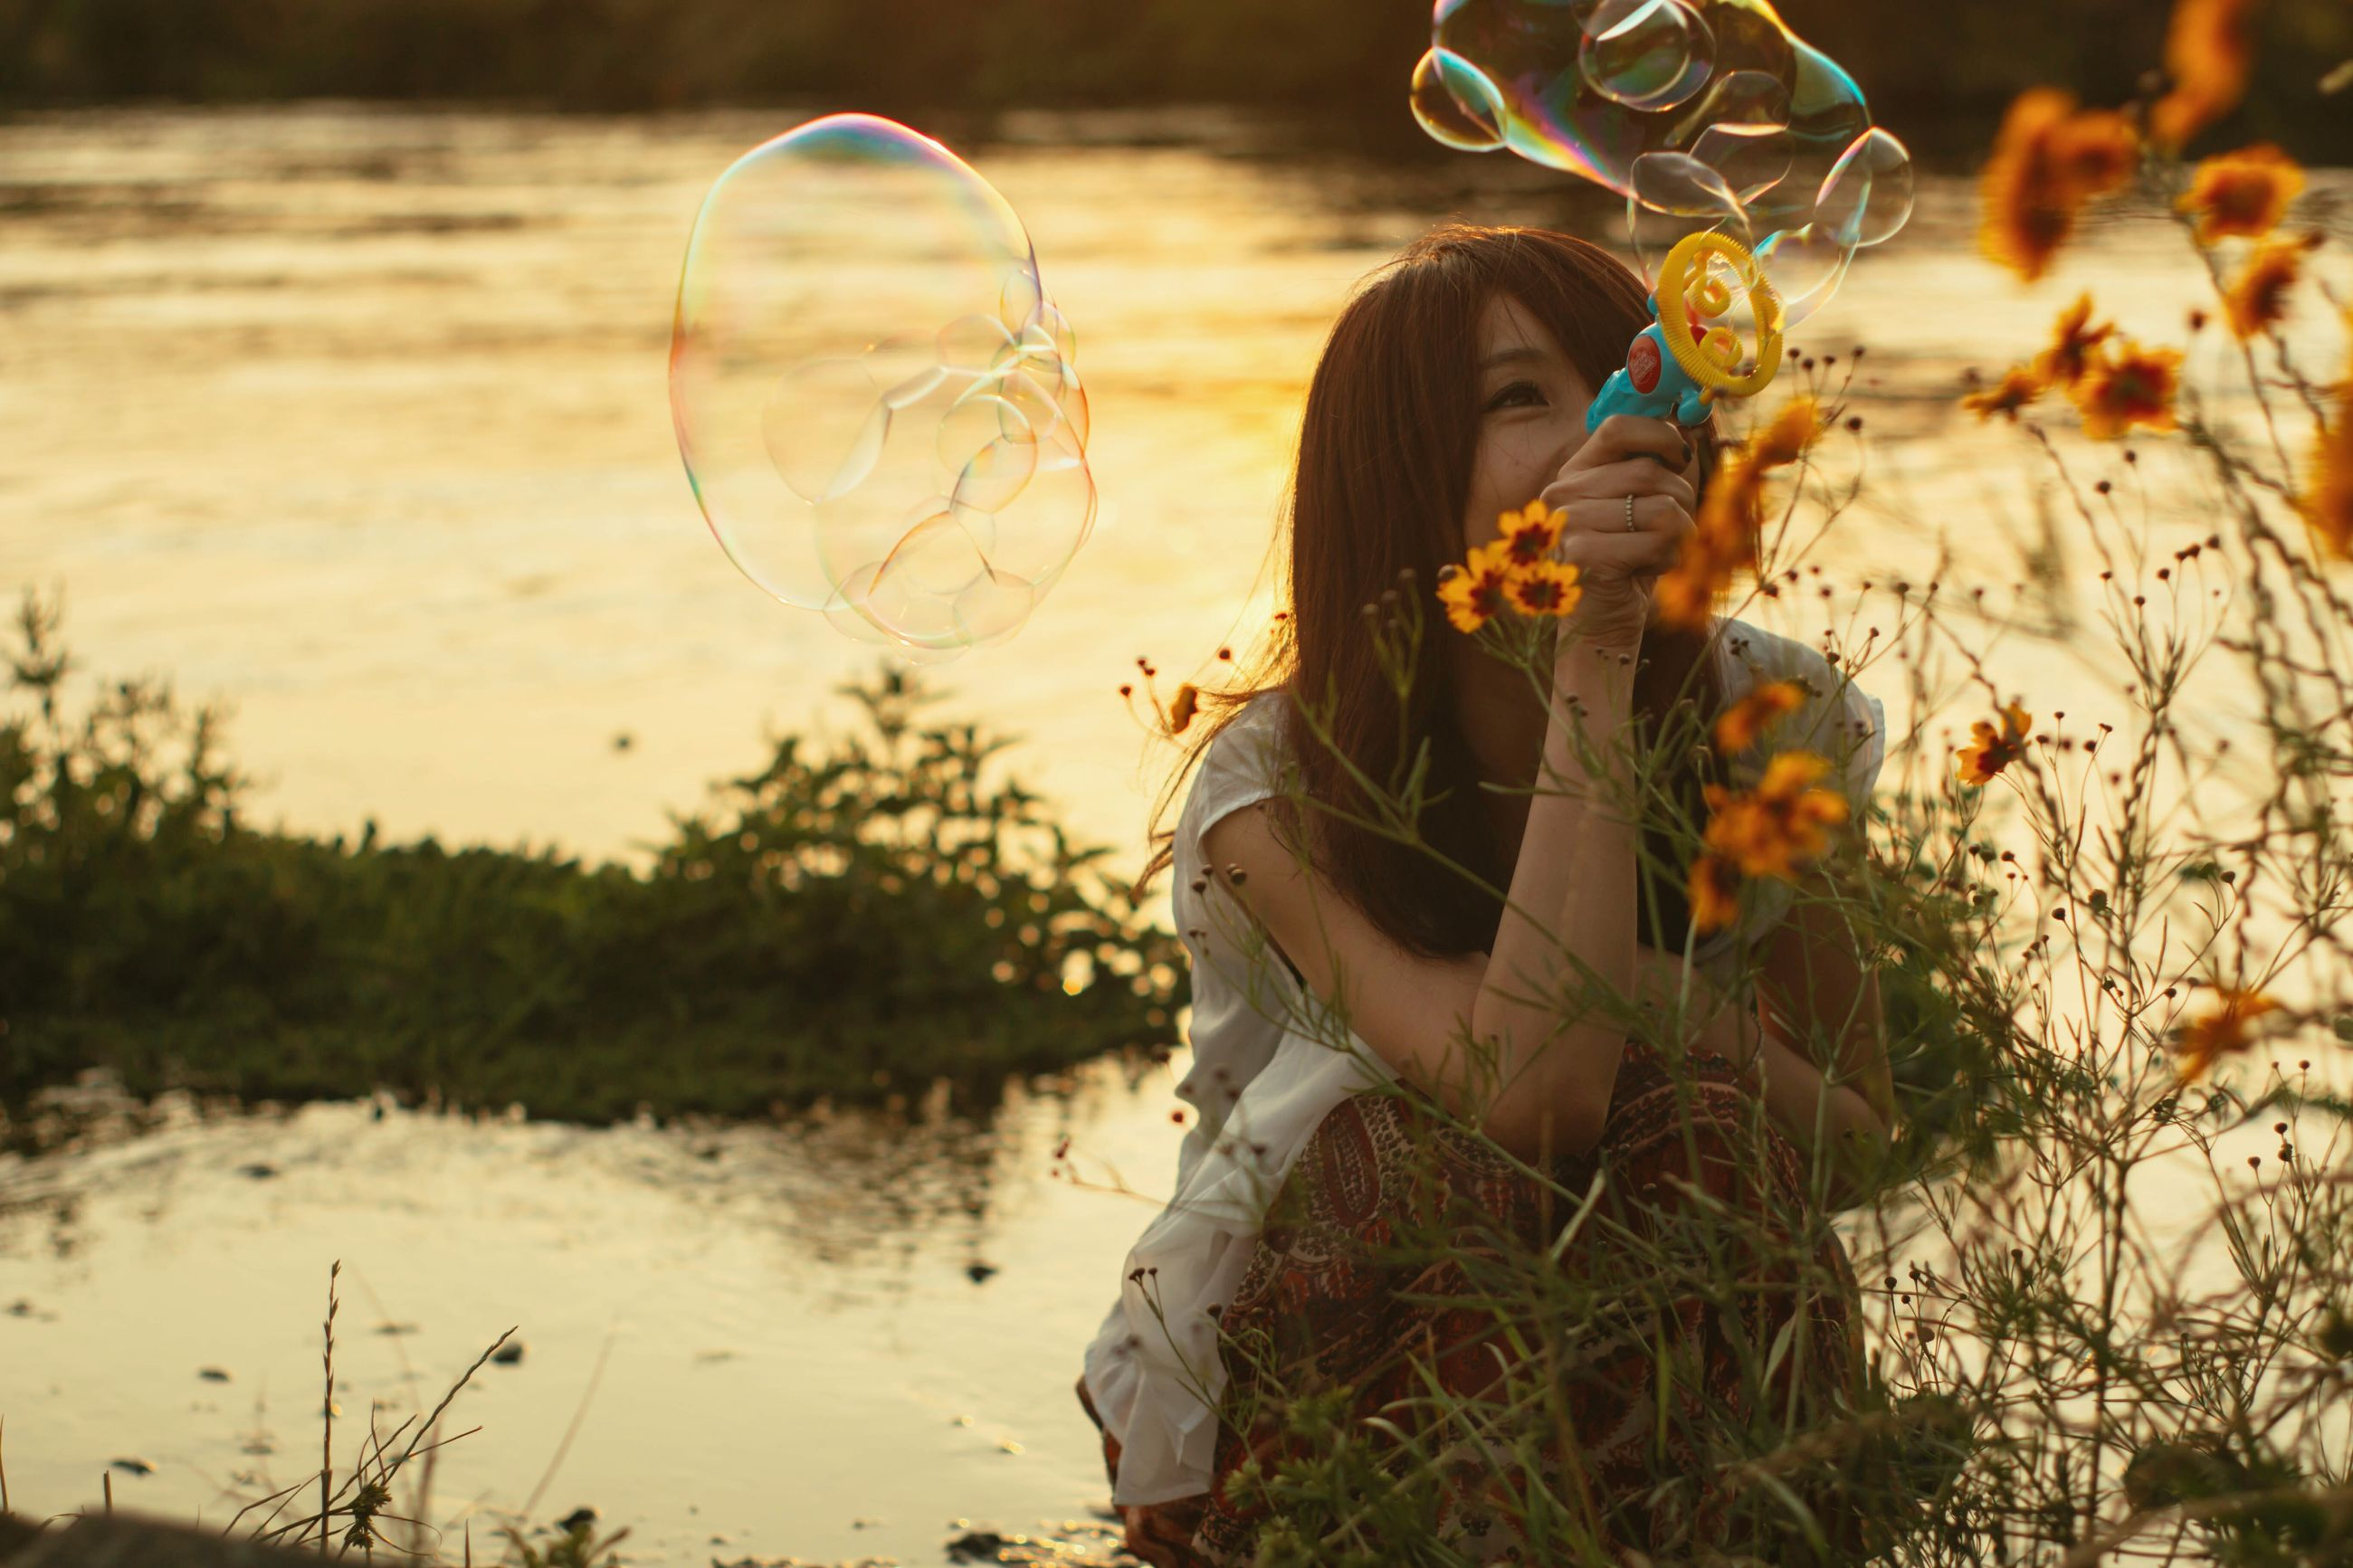 real people, one person, leisure activity, holding, lifestyles, outdoors, young women, front view, casual clothing, bubble wand, young adult, full length, standing, nature, beautiful woman, fragility, day, water, women, flower, people